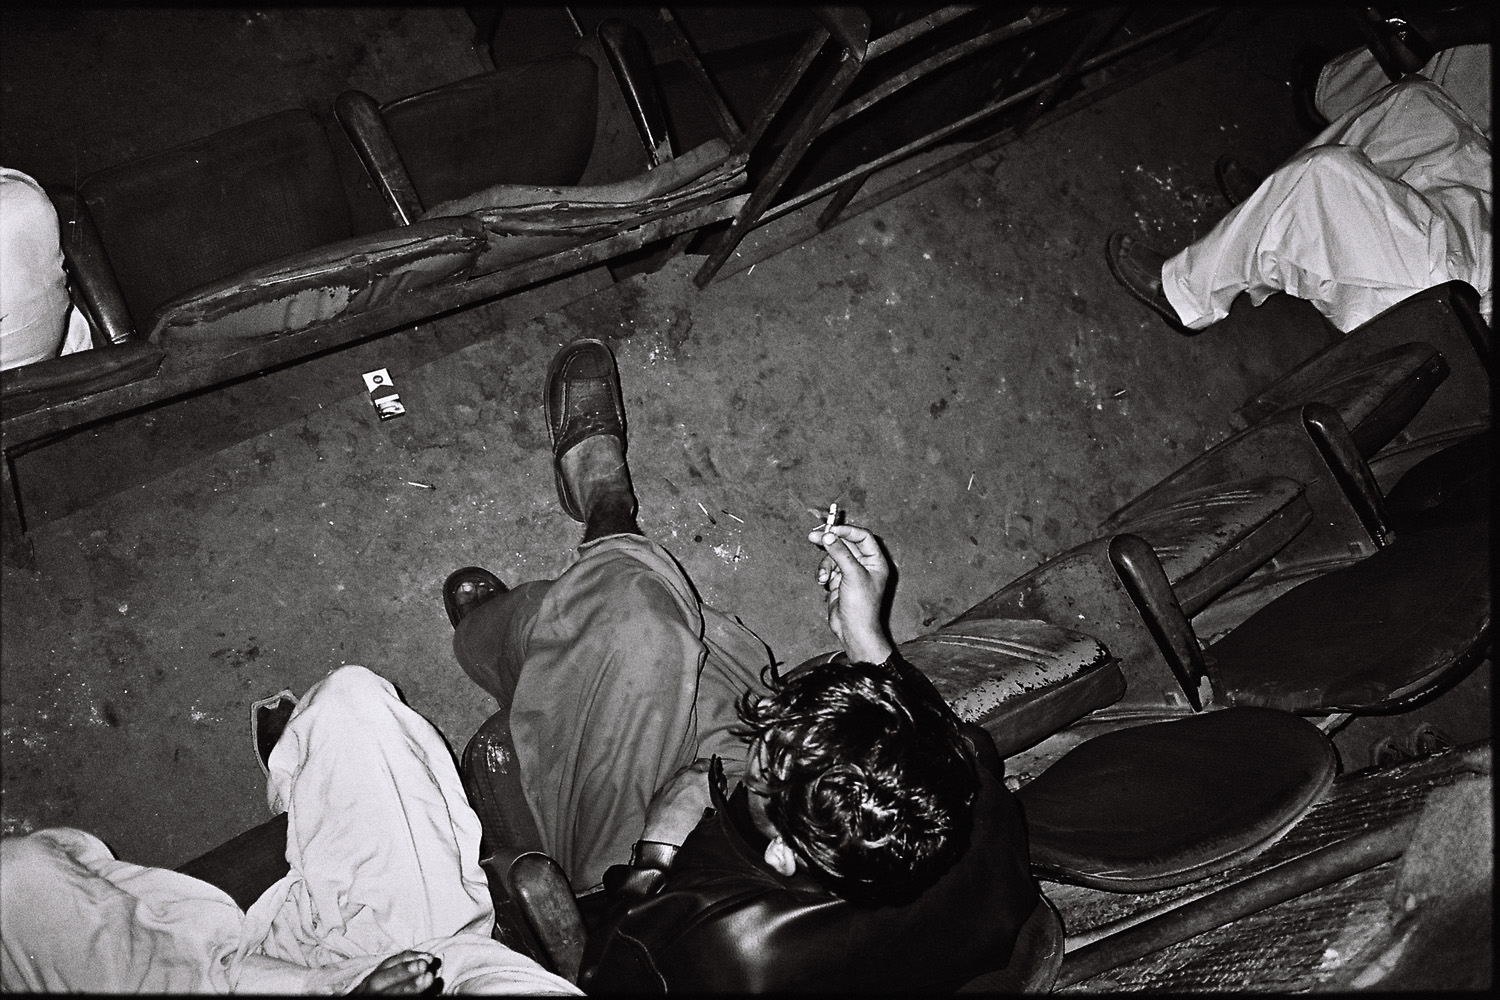 A young man idles in the back row of the movie theater, littering the floor with cigarette butts as he watches the film.